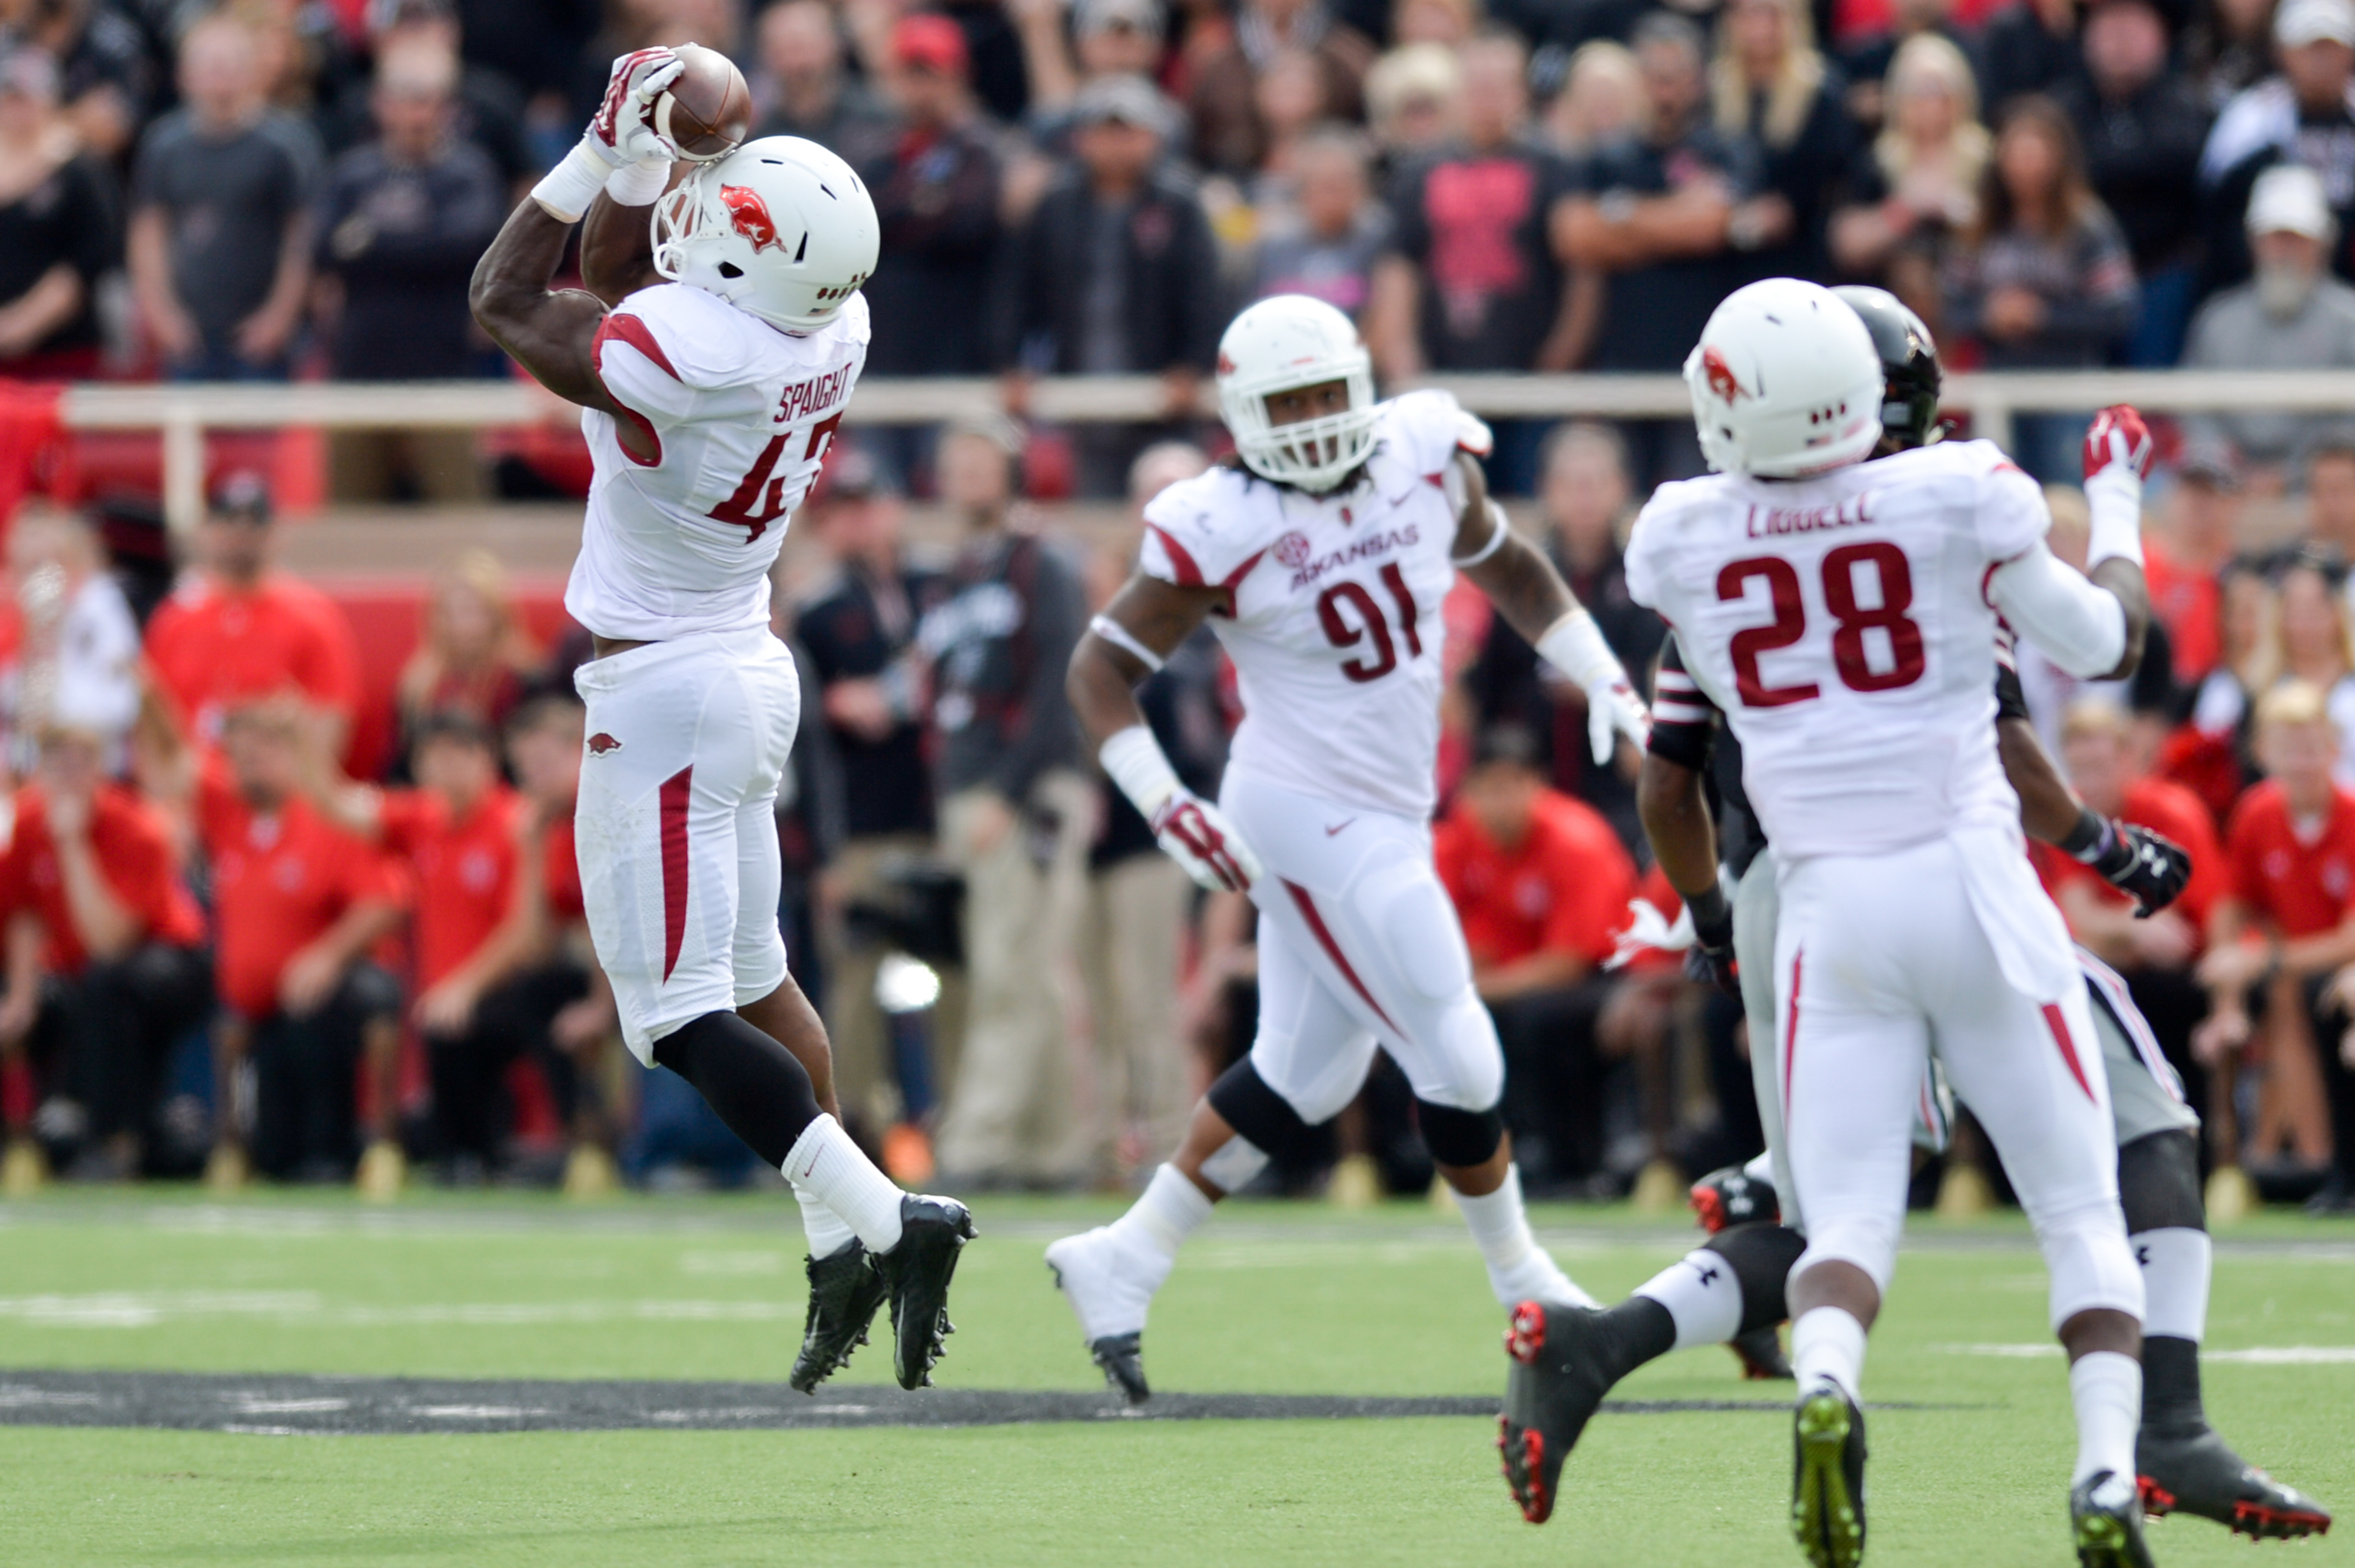 Spaight's interception late in the 2nd quarter just after Arkansas' turnover was one of the plays of the game.